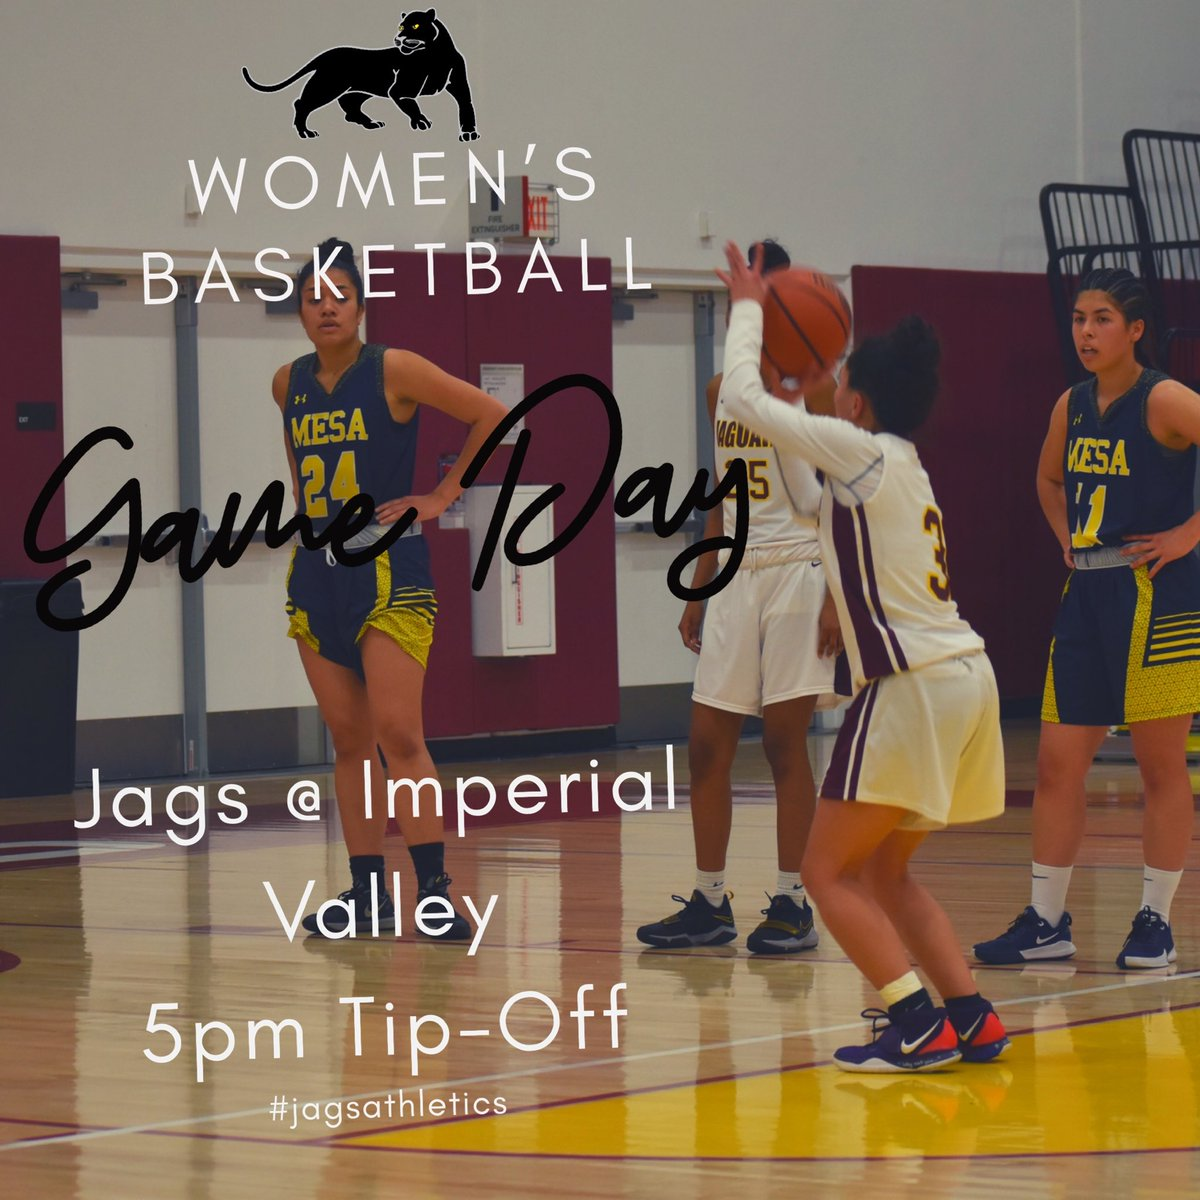 Our Women's basketball team heads out to @ivccollege today. Tip-off at 5p. Good luck @SWC_LadyJags !! #gojags #jagsathletics #jucohoops #womensbasketball pic.twitter.com/WDNiFOhqz0